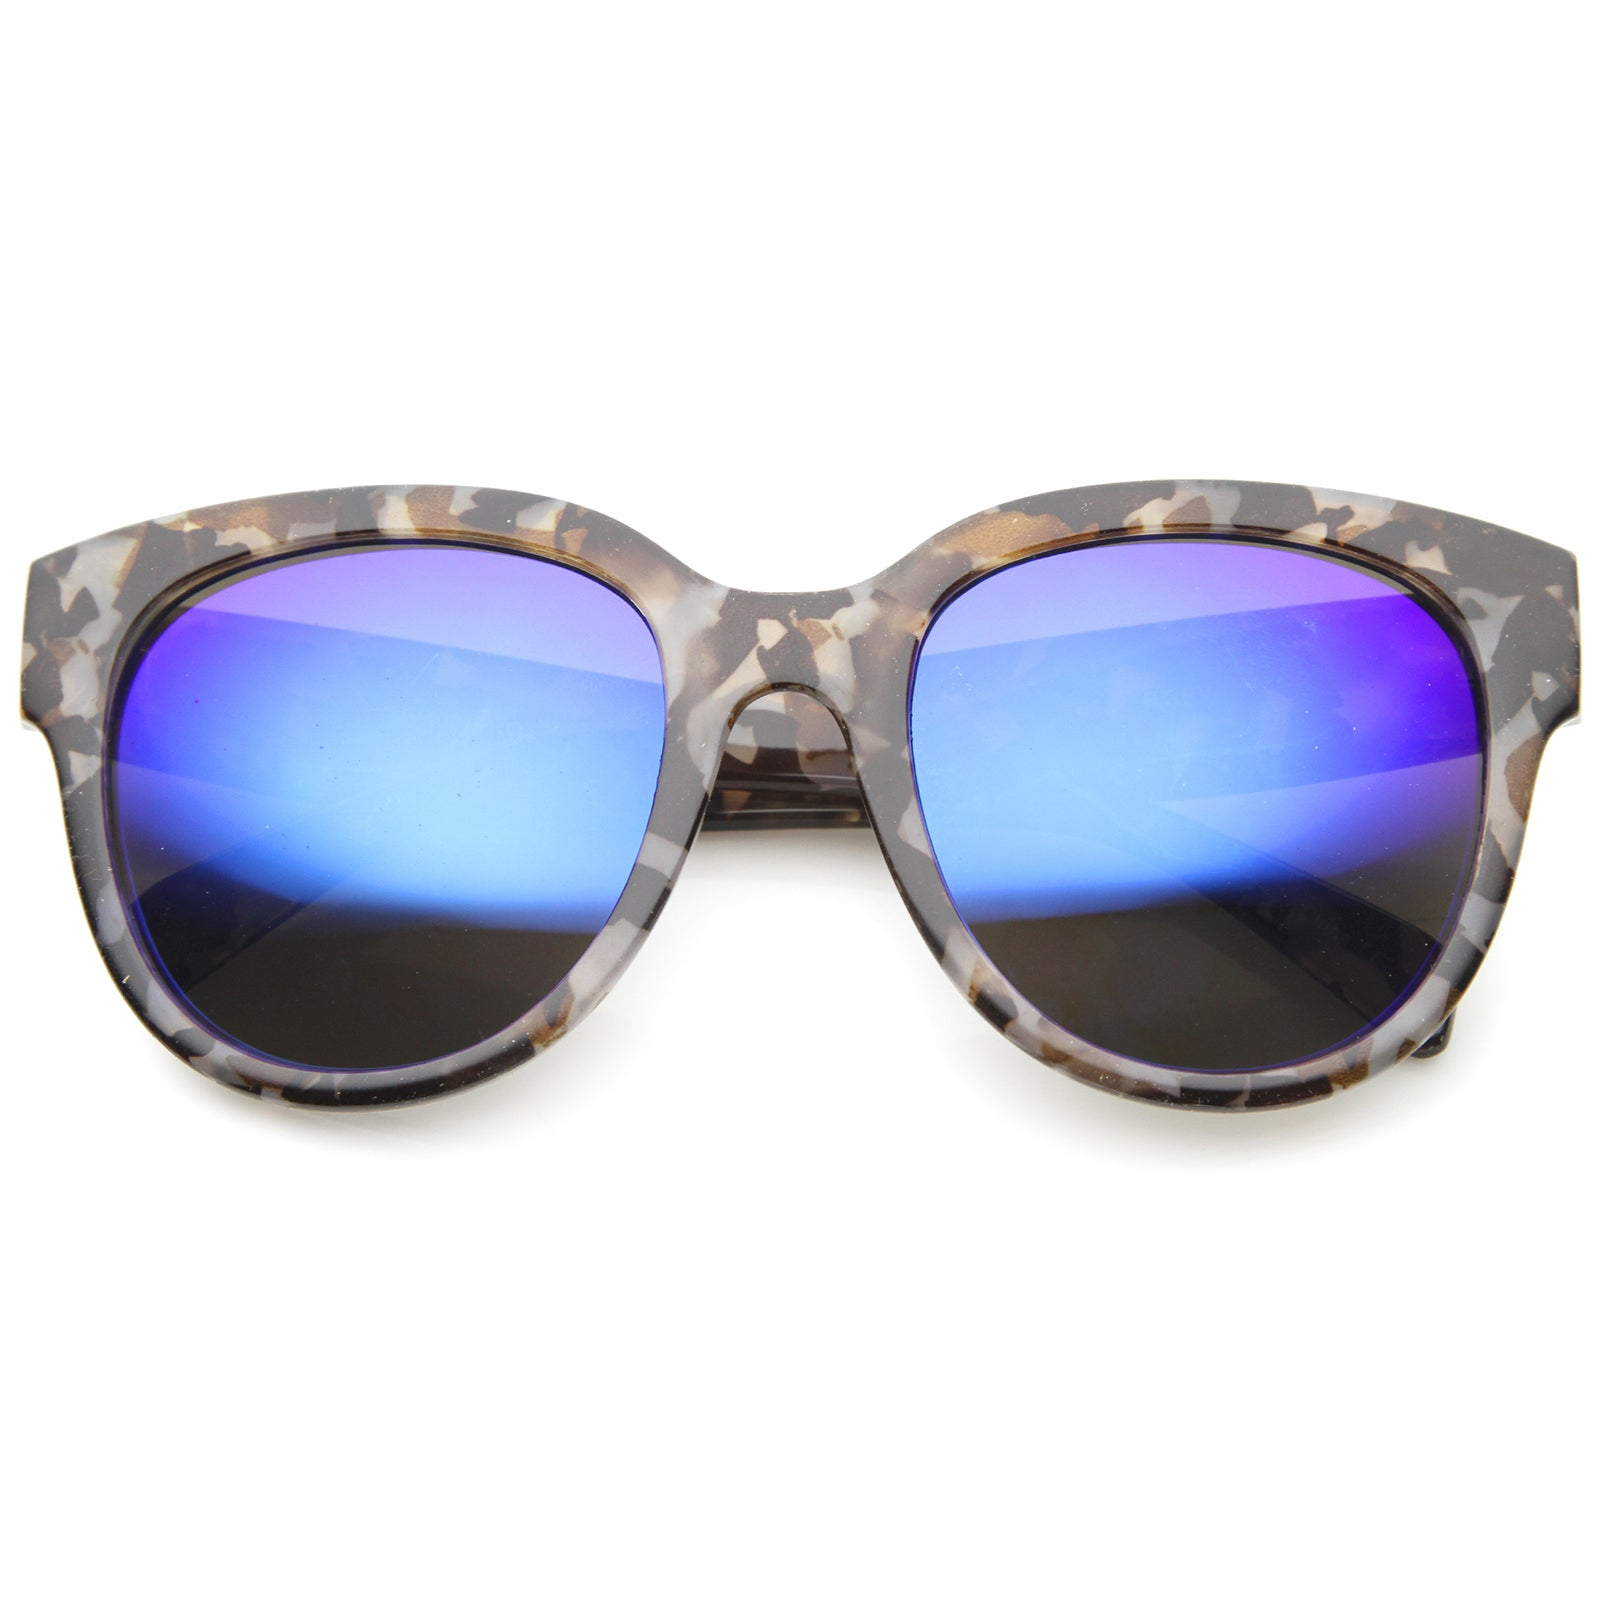 Womens Cat Eye Sunglasses With UV400 Protected Mirrored Lens - sunglass.la - 1